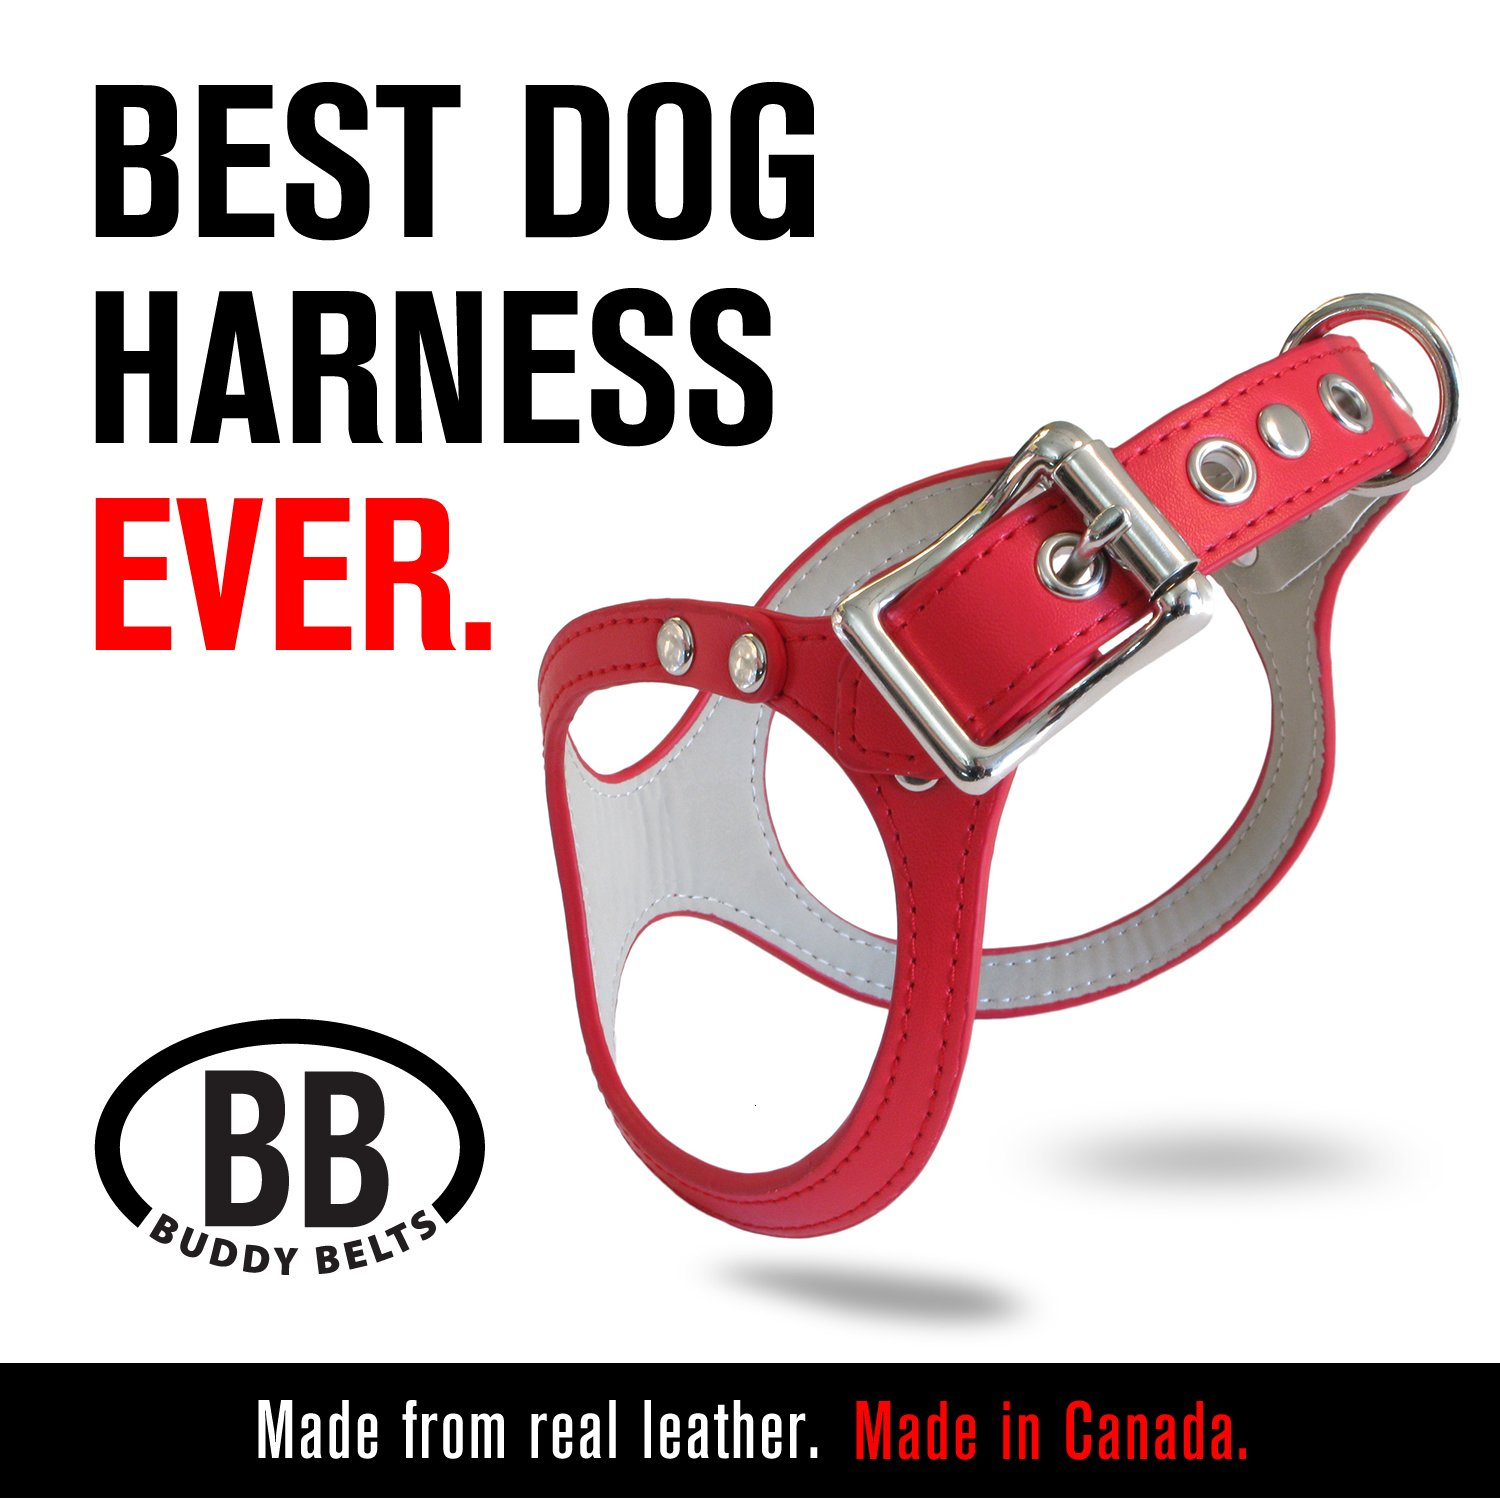 Buddy-belts ORIGINAL DURABLE Classic LEATHER Dog Harness (Red, Size 10)